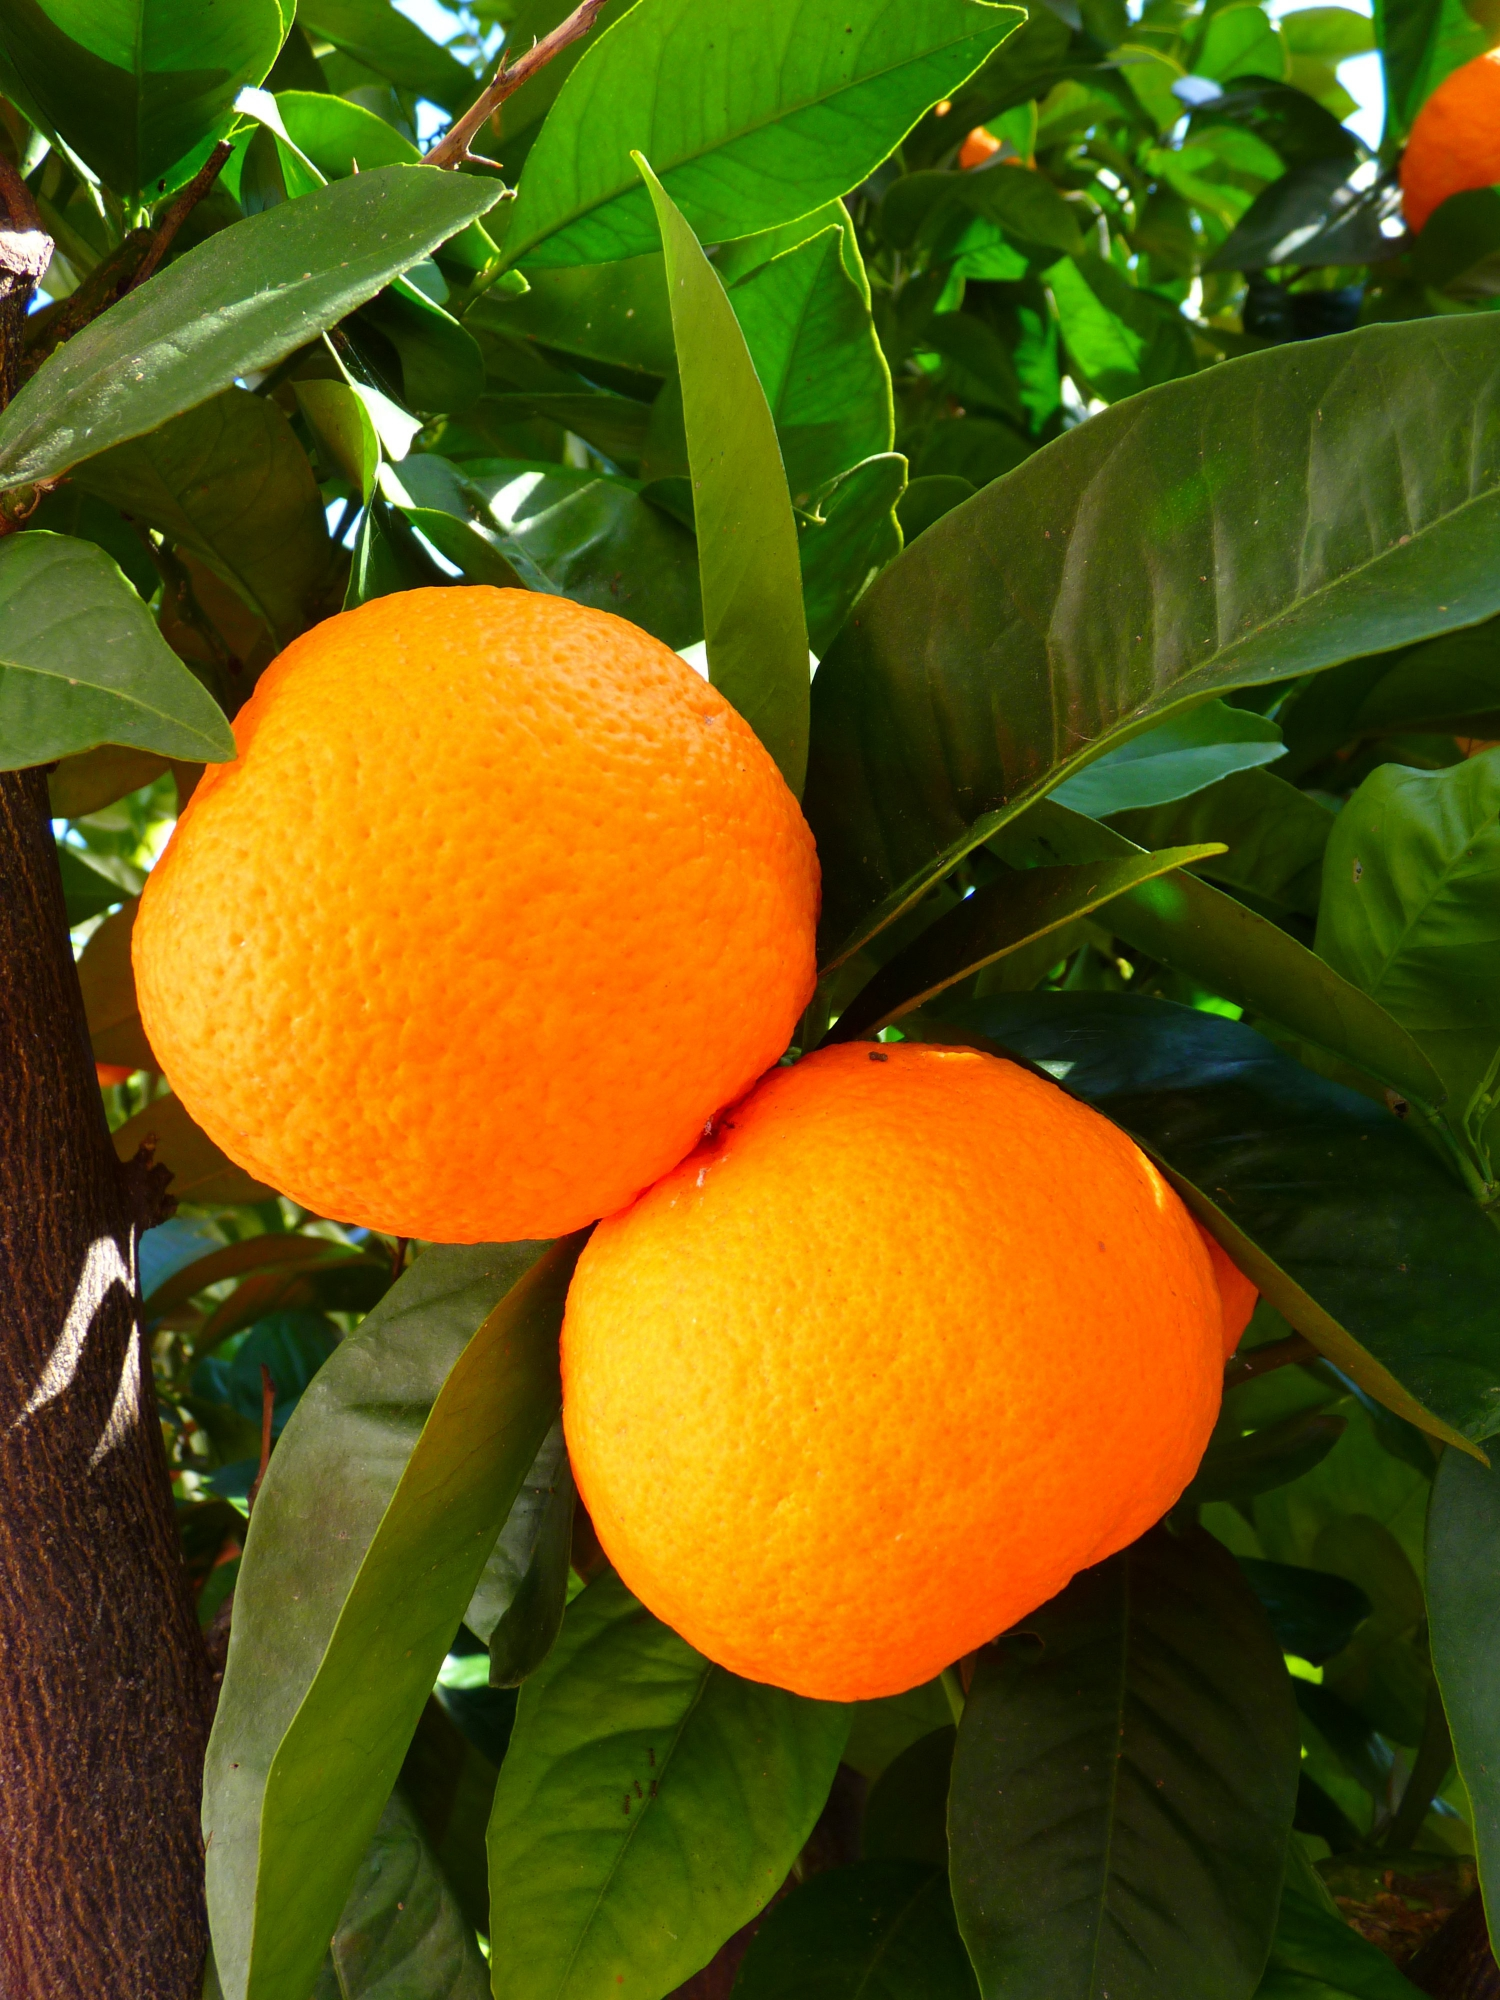 Oranges, while another commonplace fruit, come to many as a surprise in Vietnam